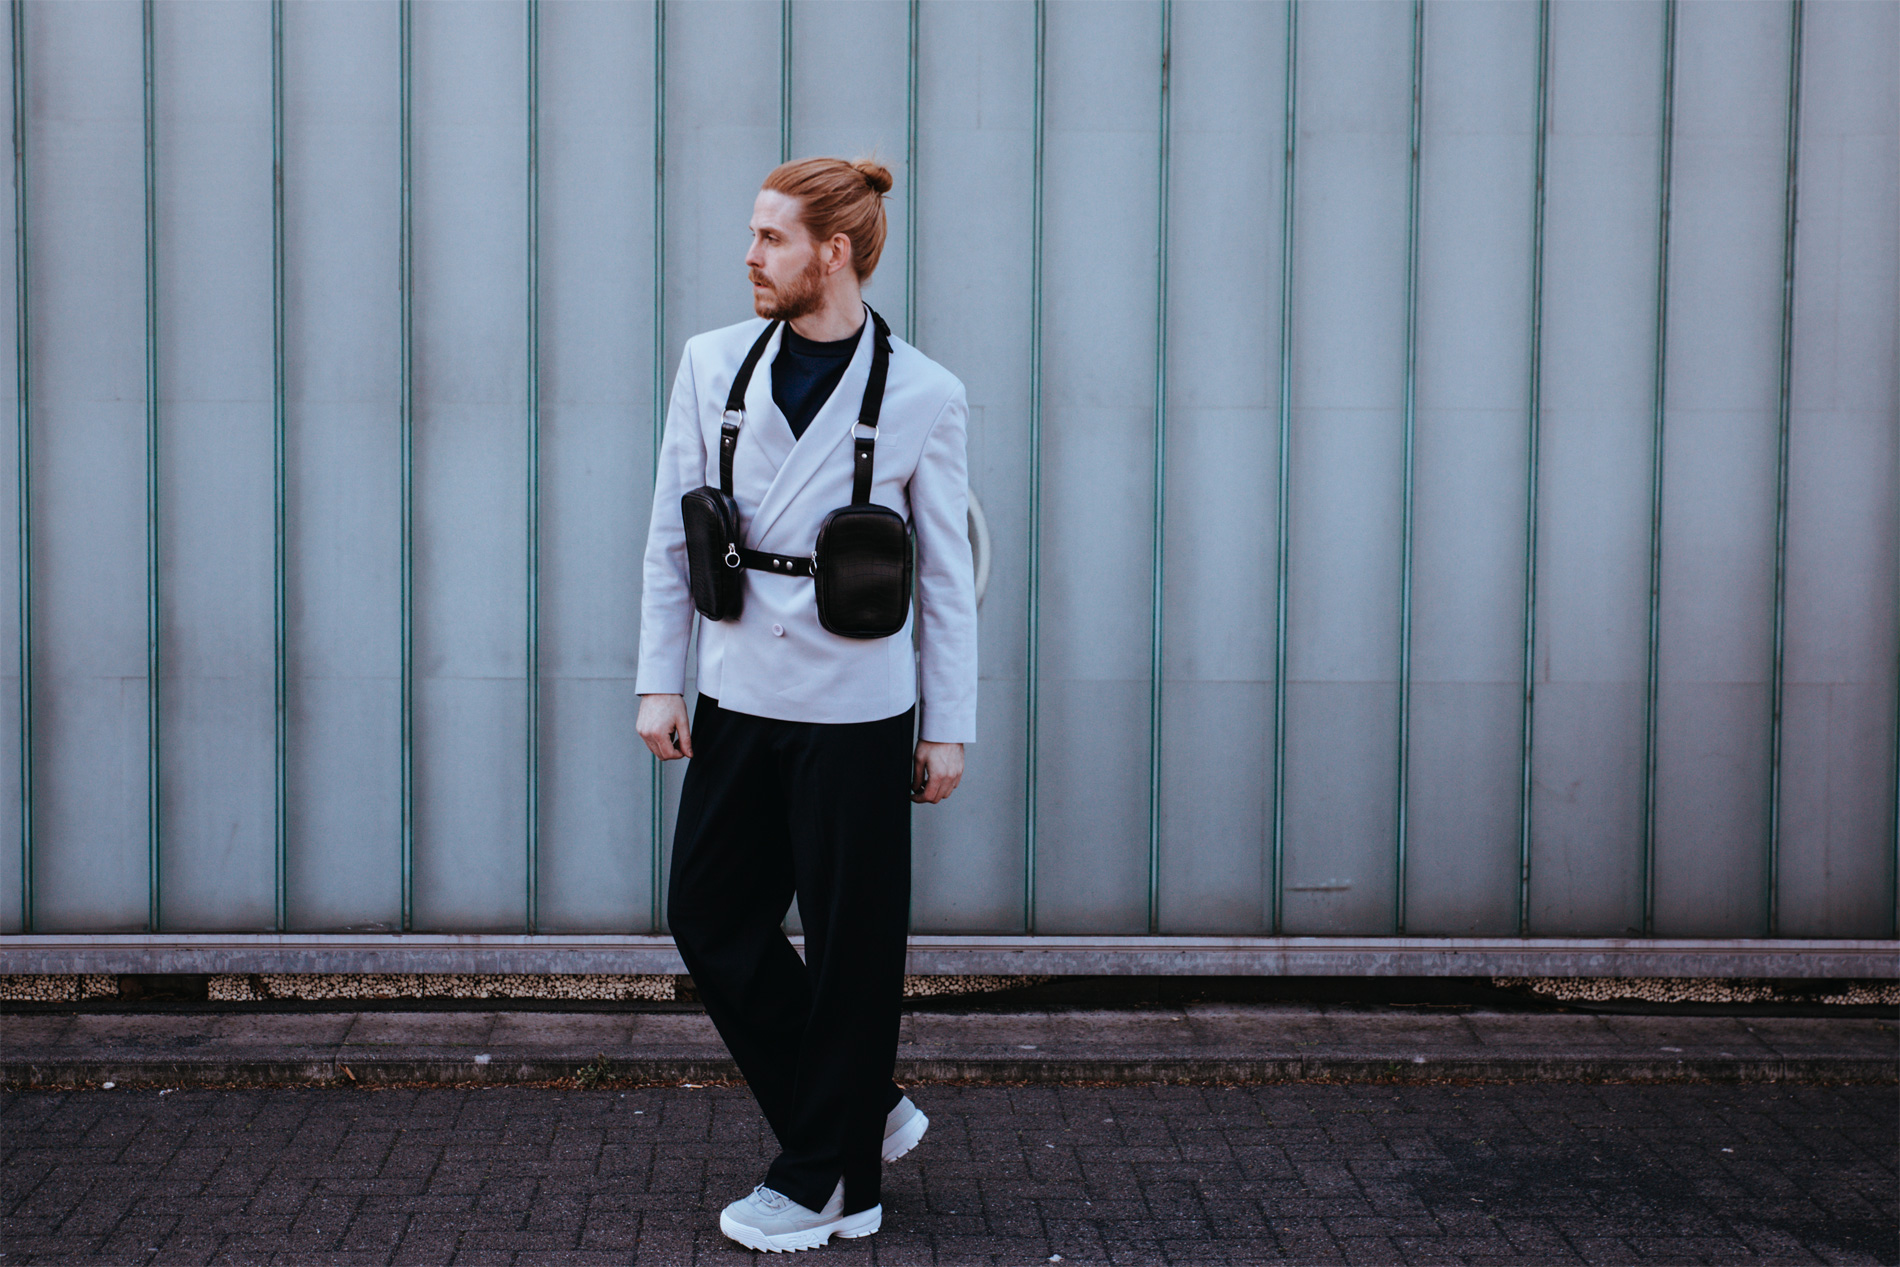 Modern-Malefashion-Sakko-Fila-Disruptor-Style-Influencer-Ginger